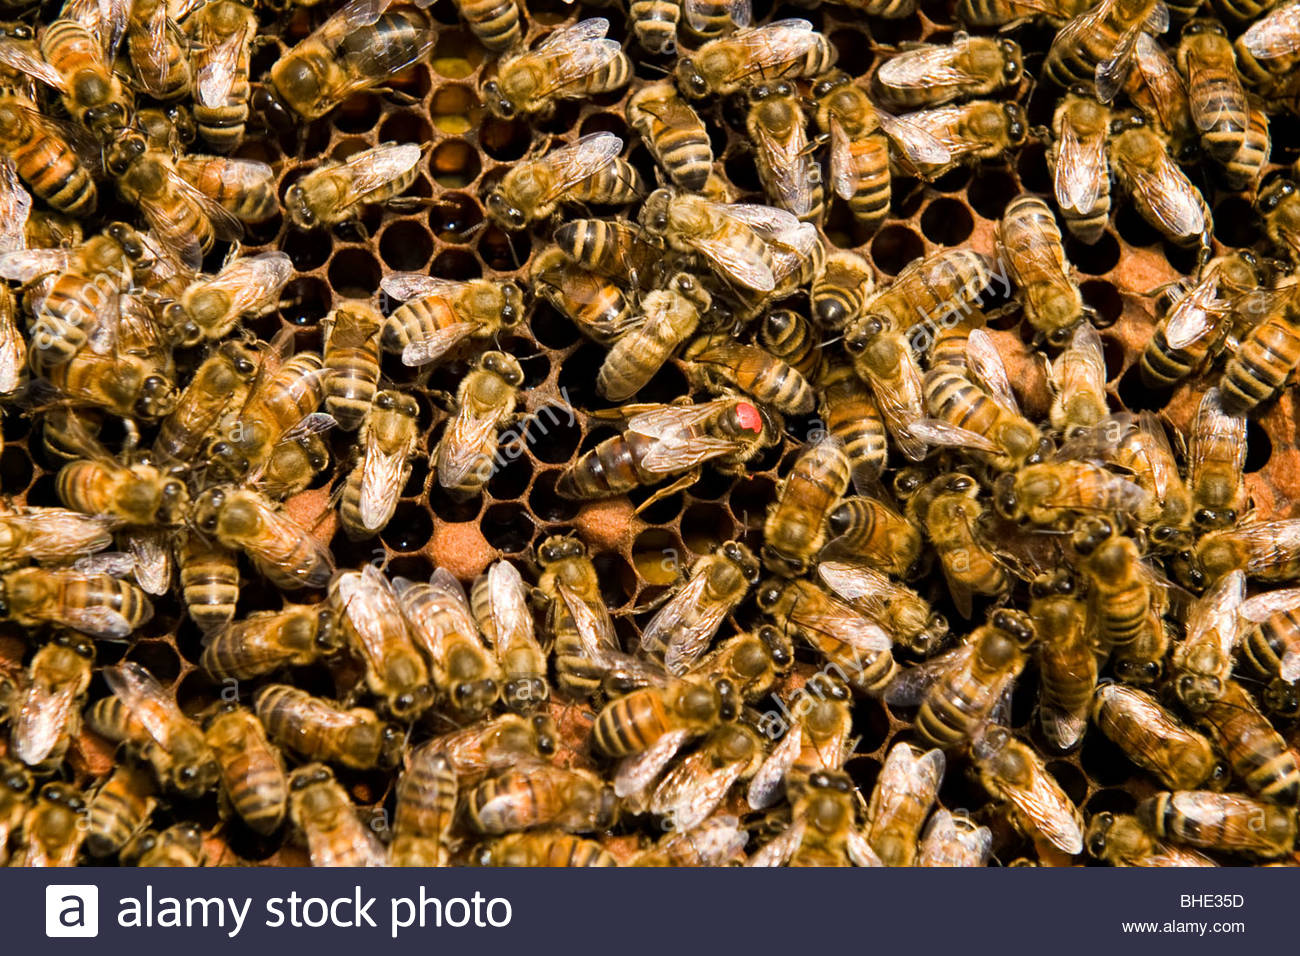 beekeeping, queen bee - Stock Image